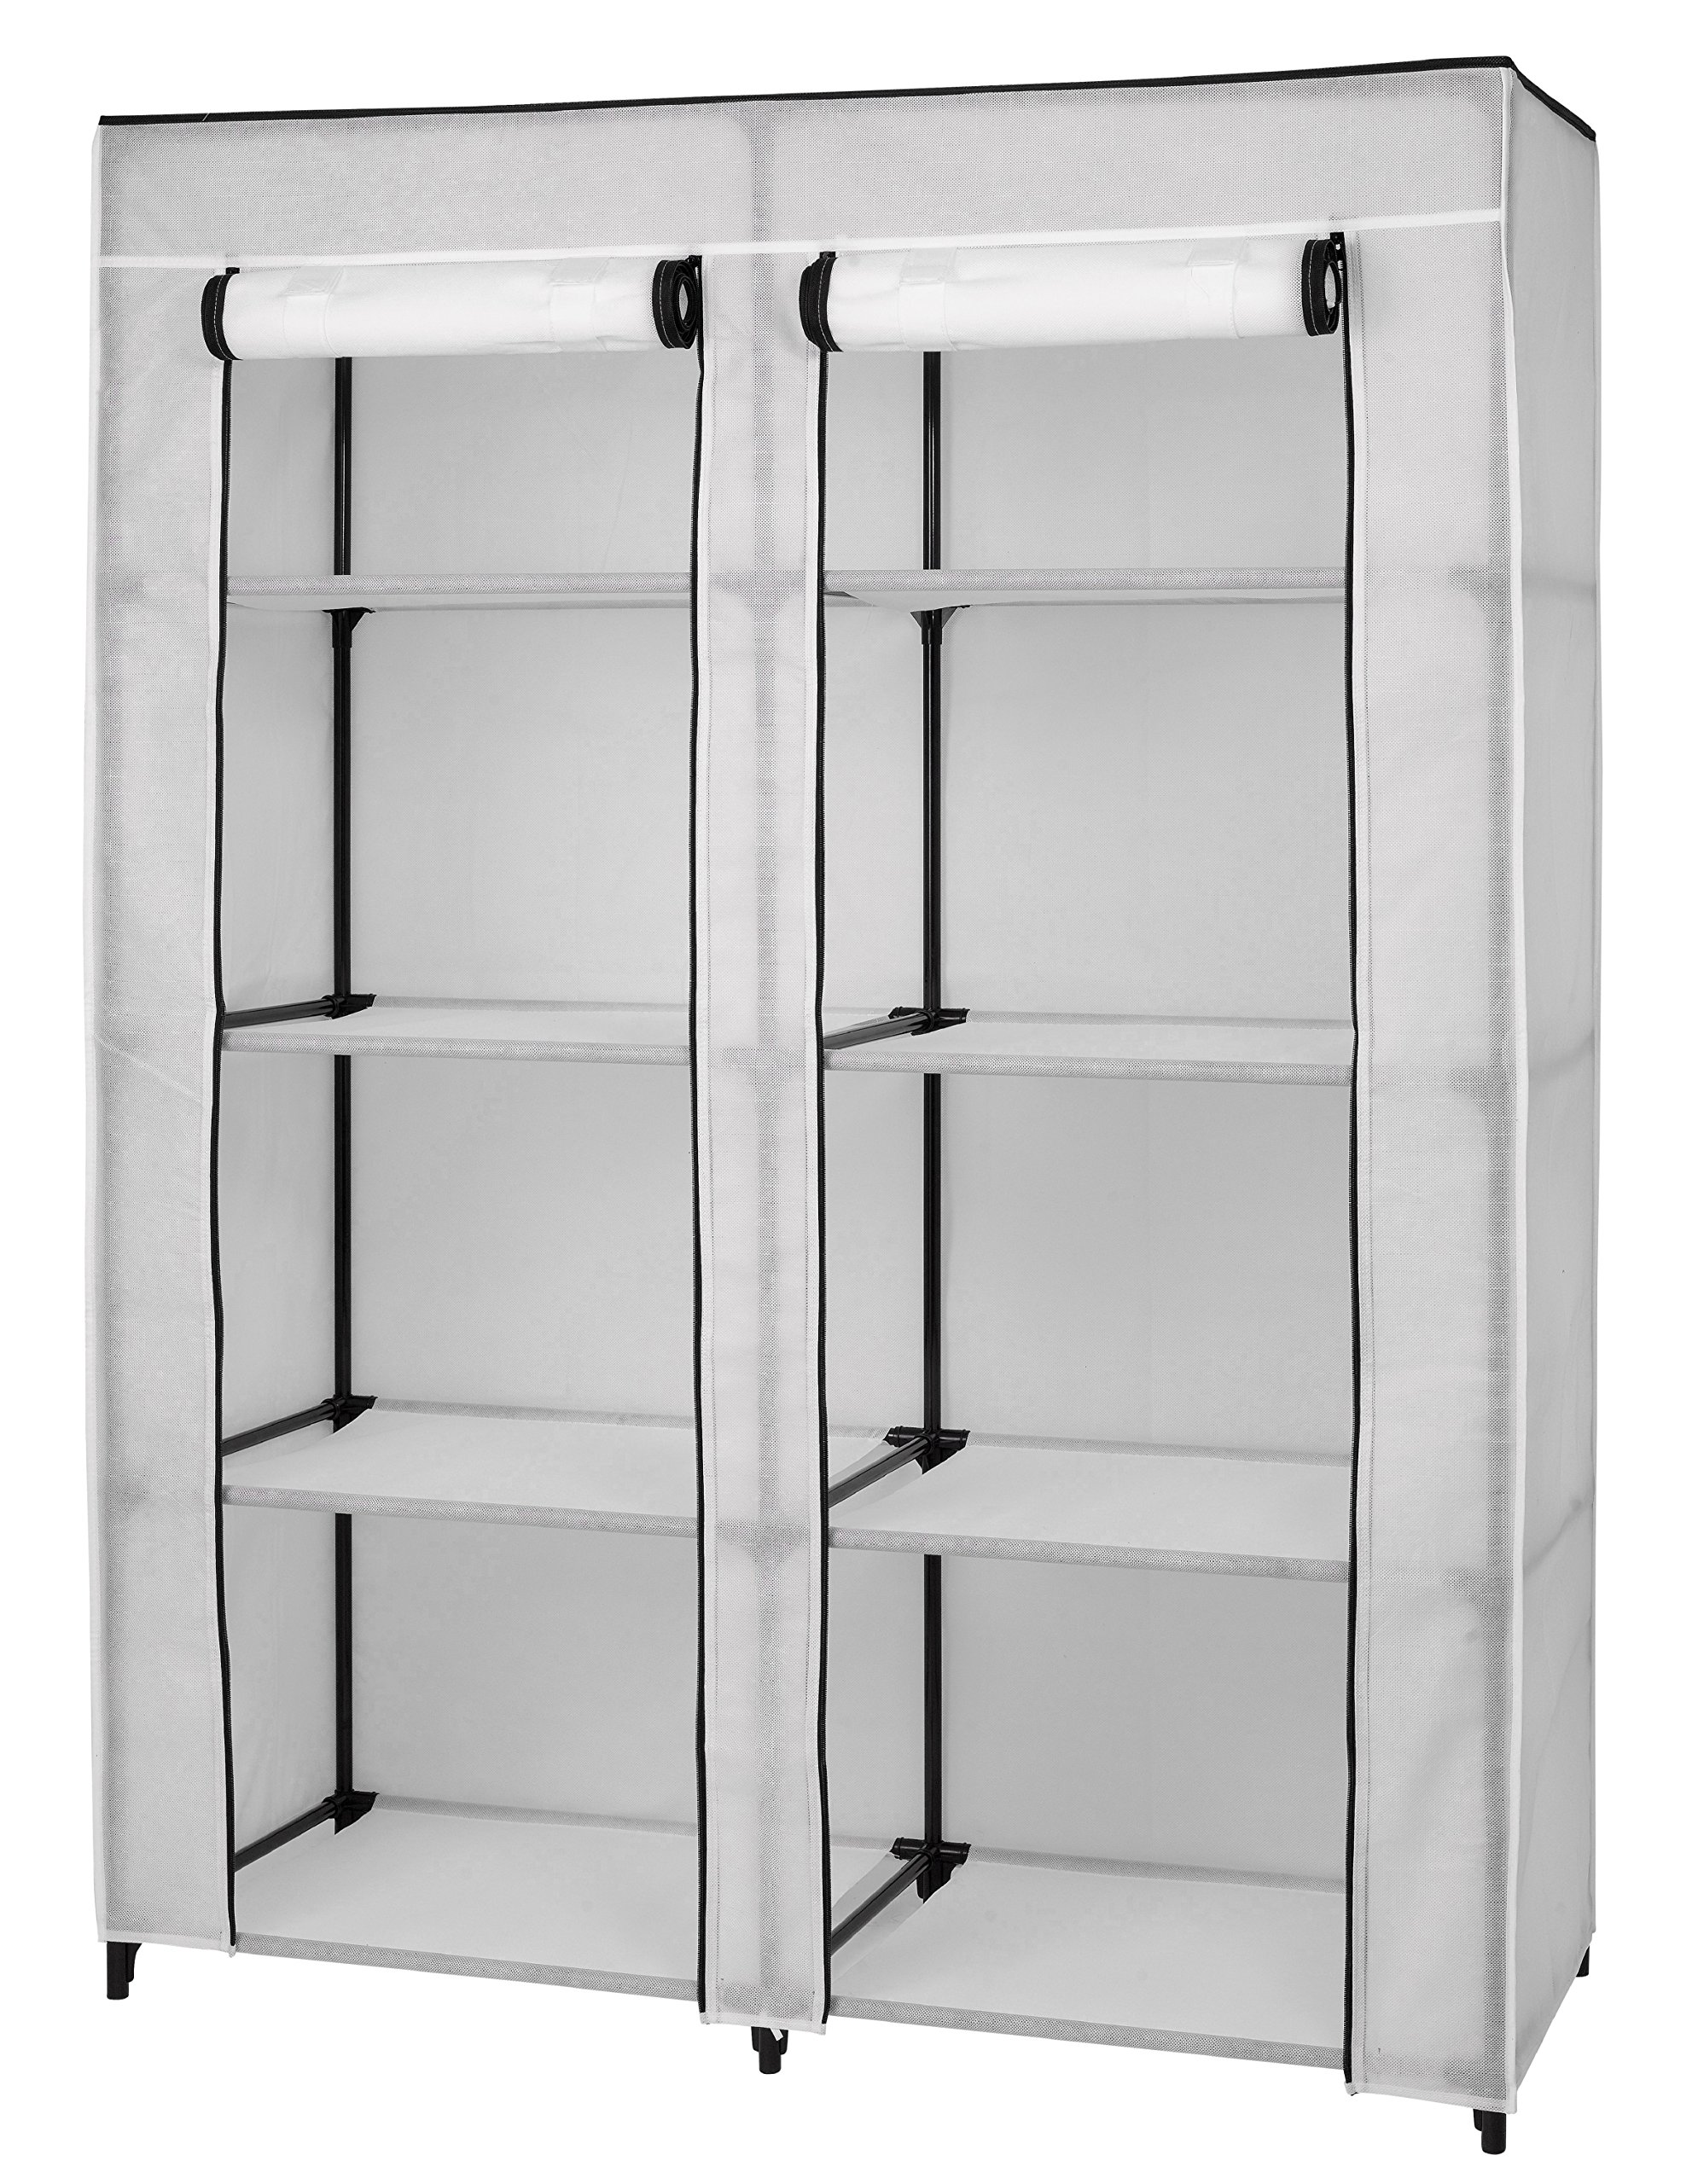 Portable Clothes Closet -Wardrobe Organizer - 8 Shelf Storage - White Vinyl Fabric - Double Zippered Doors - Durable Metal Frame - Easy No Tool Assembly - 62'' H X 48'' W X 20'' D